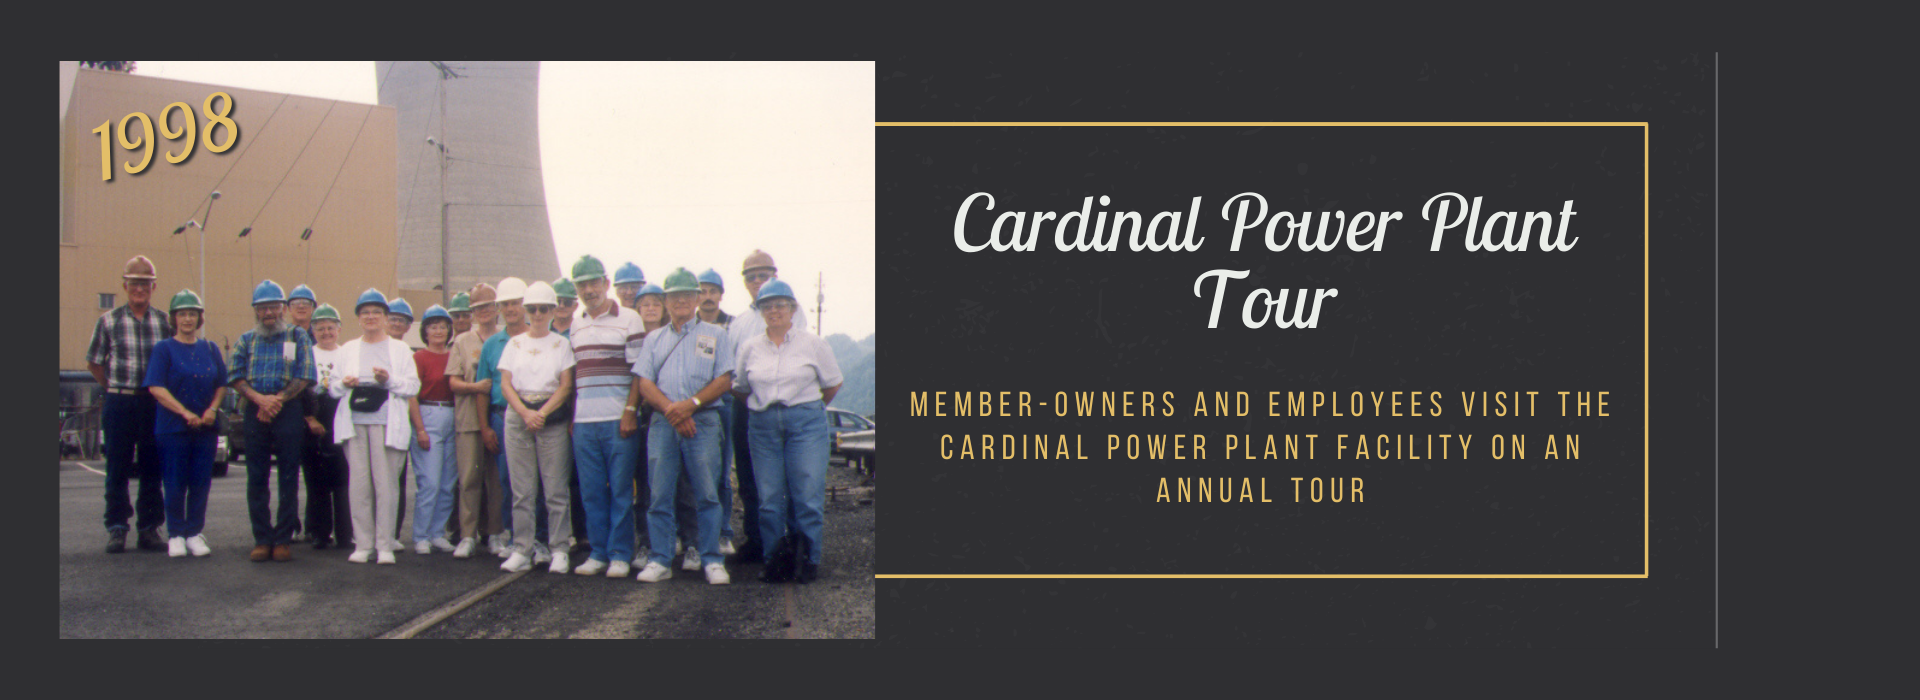 member-owners and employees visit the Cardinal power plant facility on an annual tour